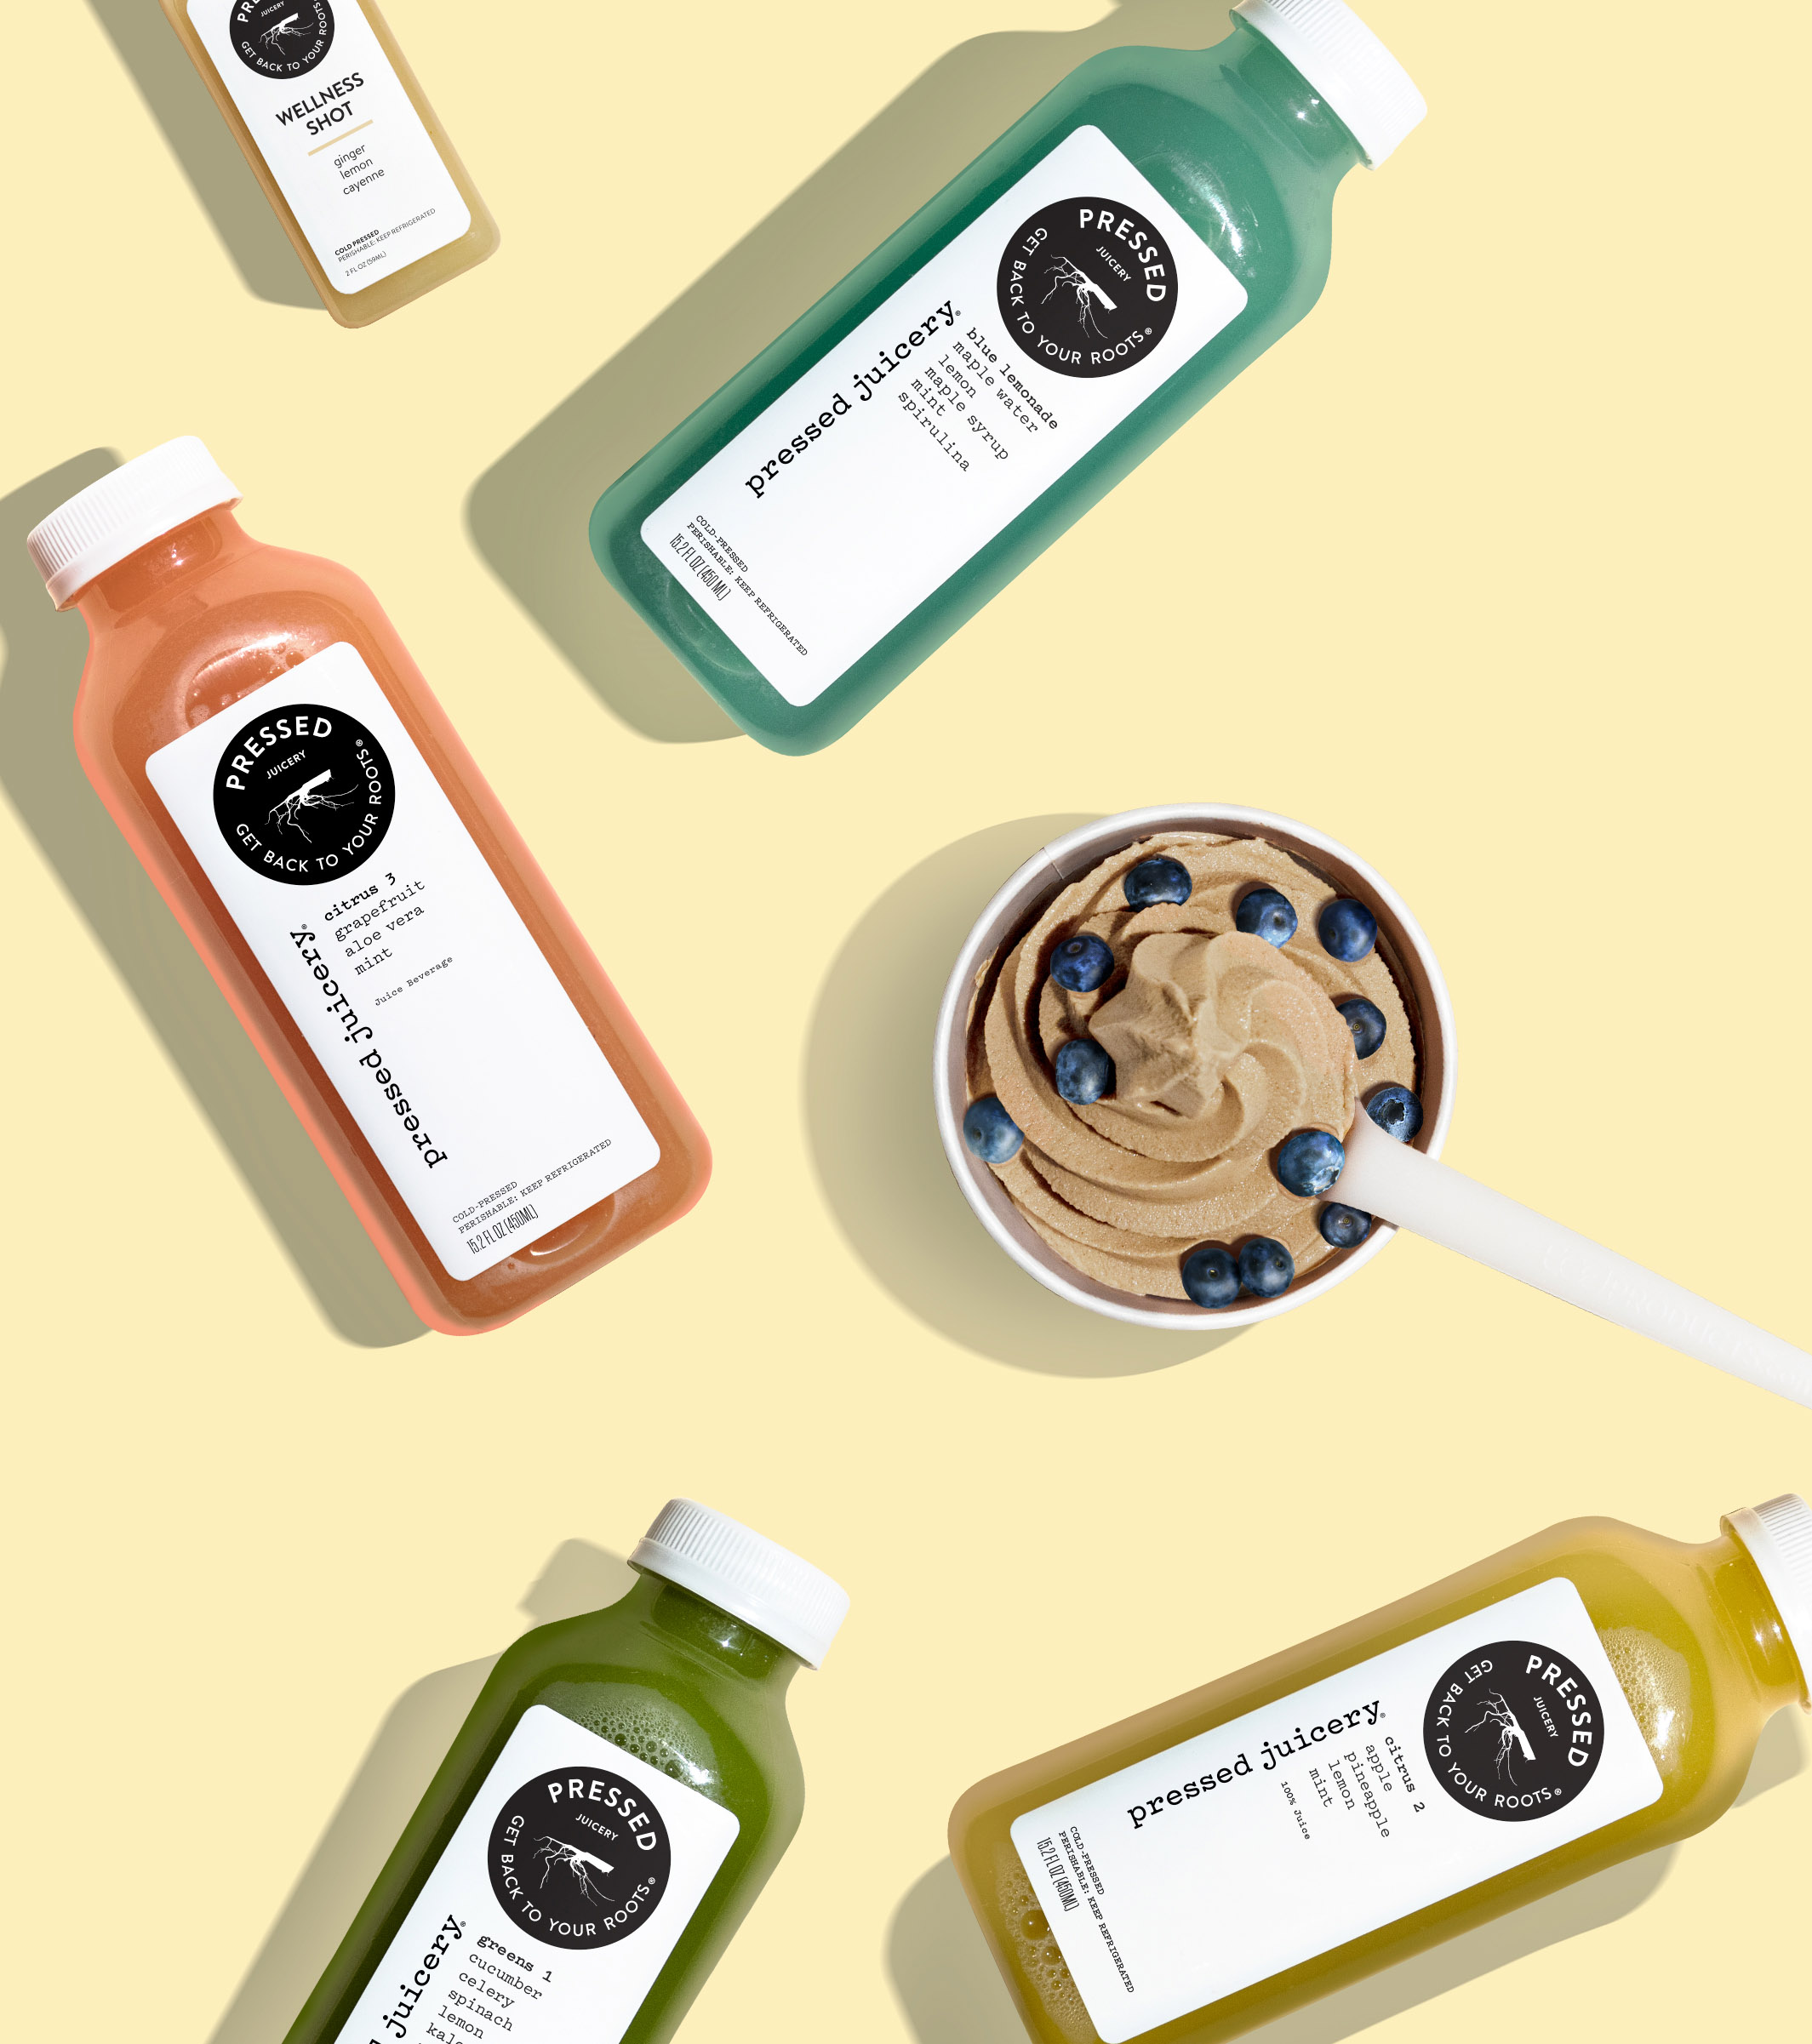 Bottles of Pressed Juicery juice and a cup of Freeze.